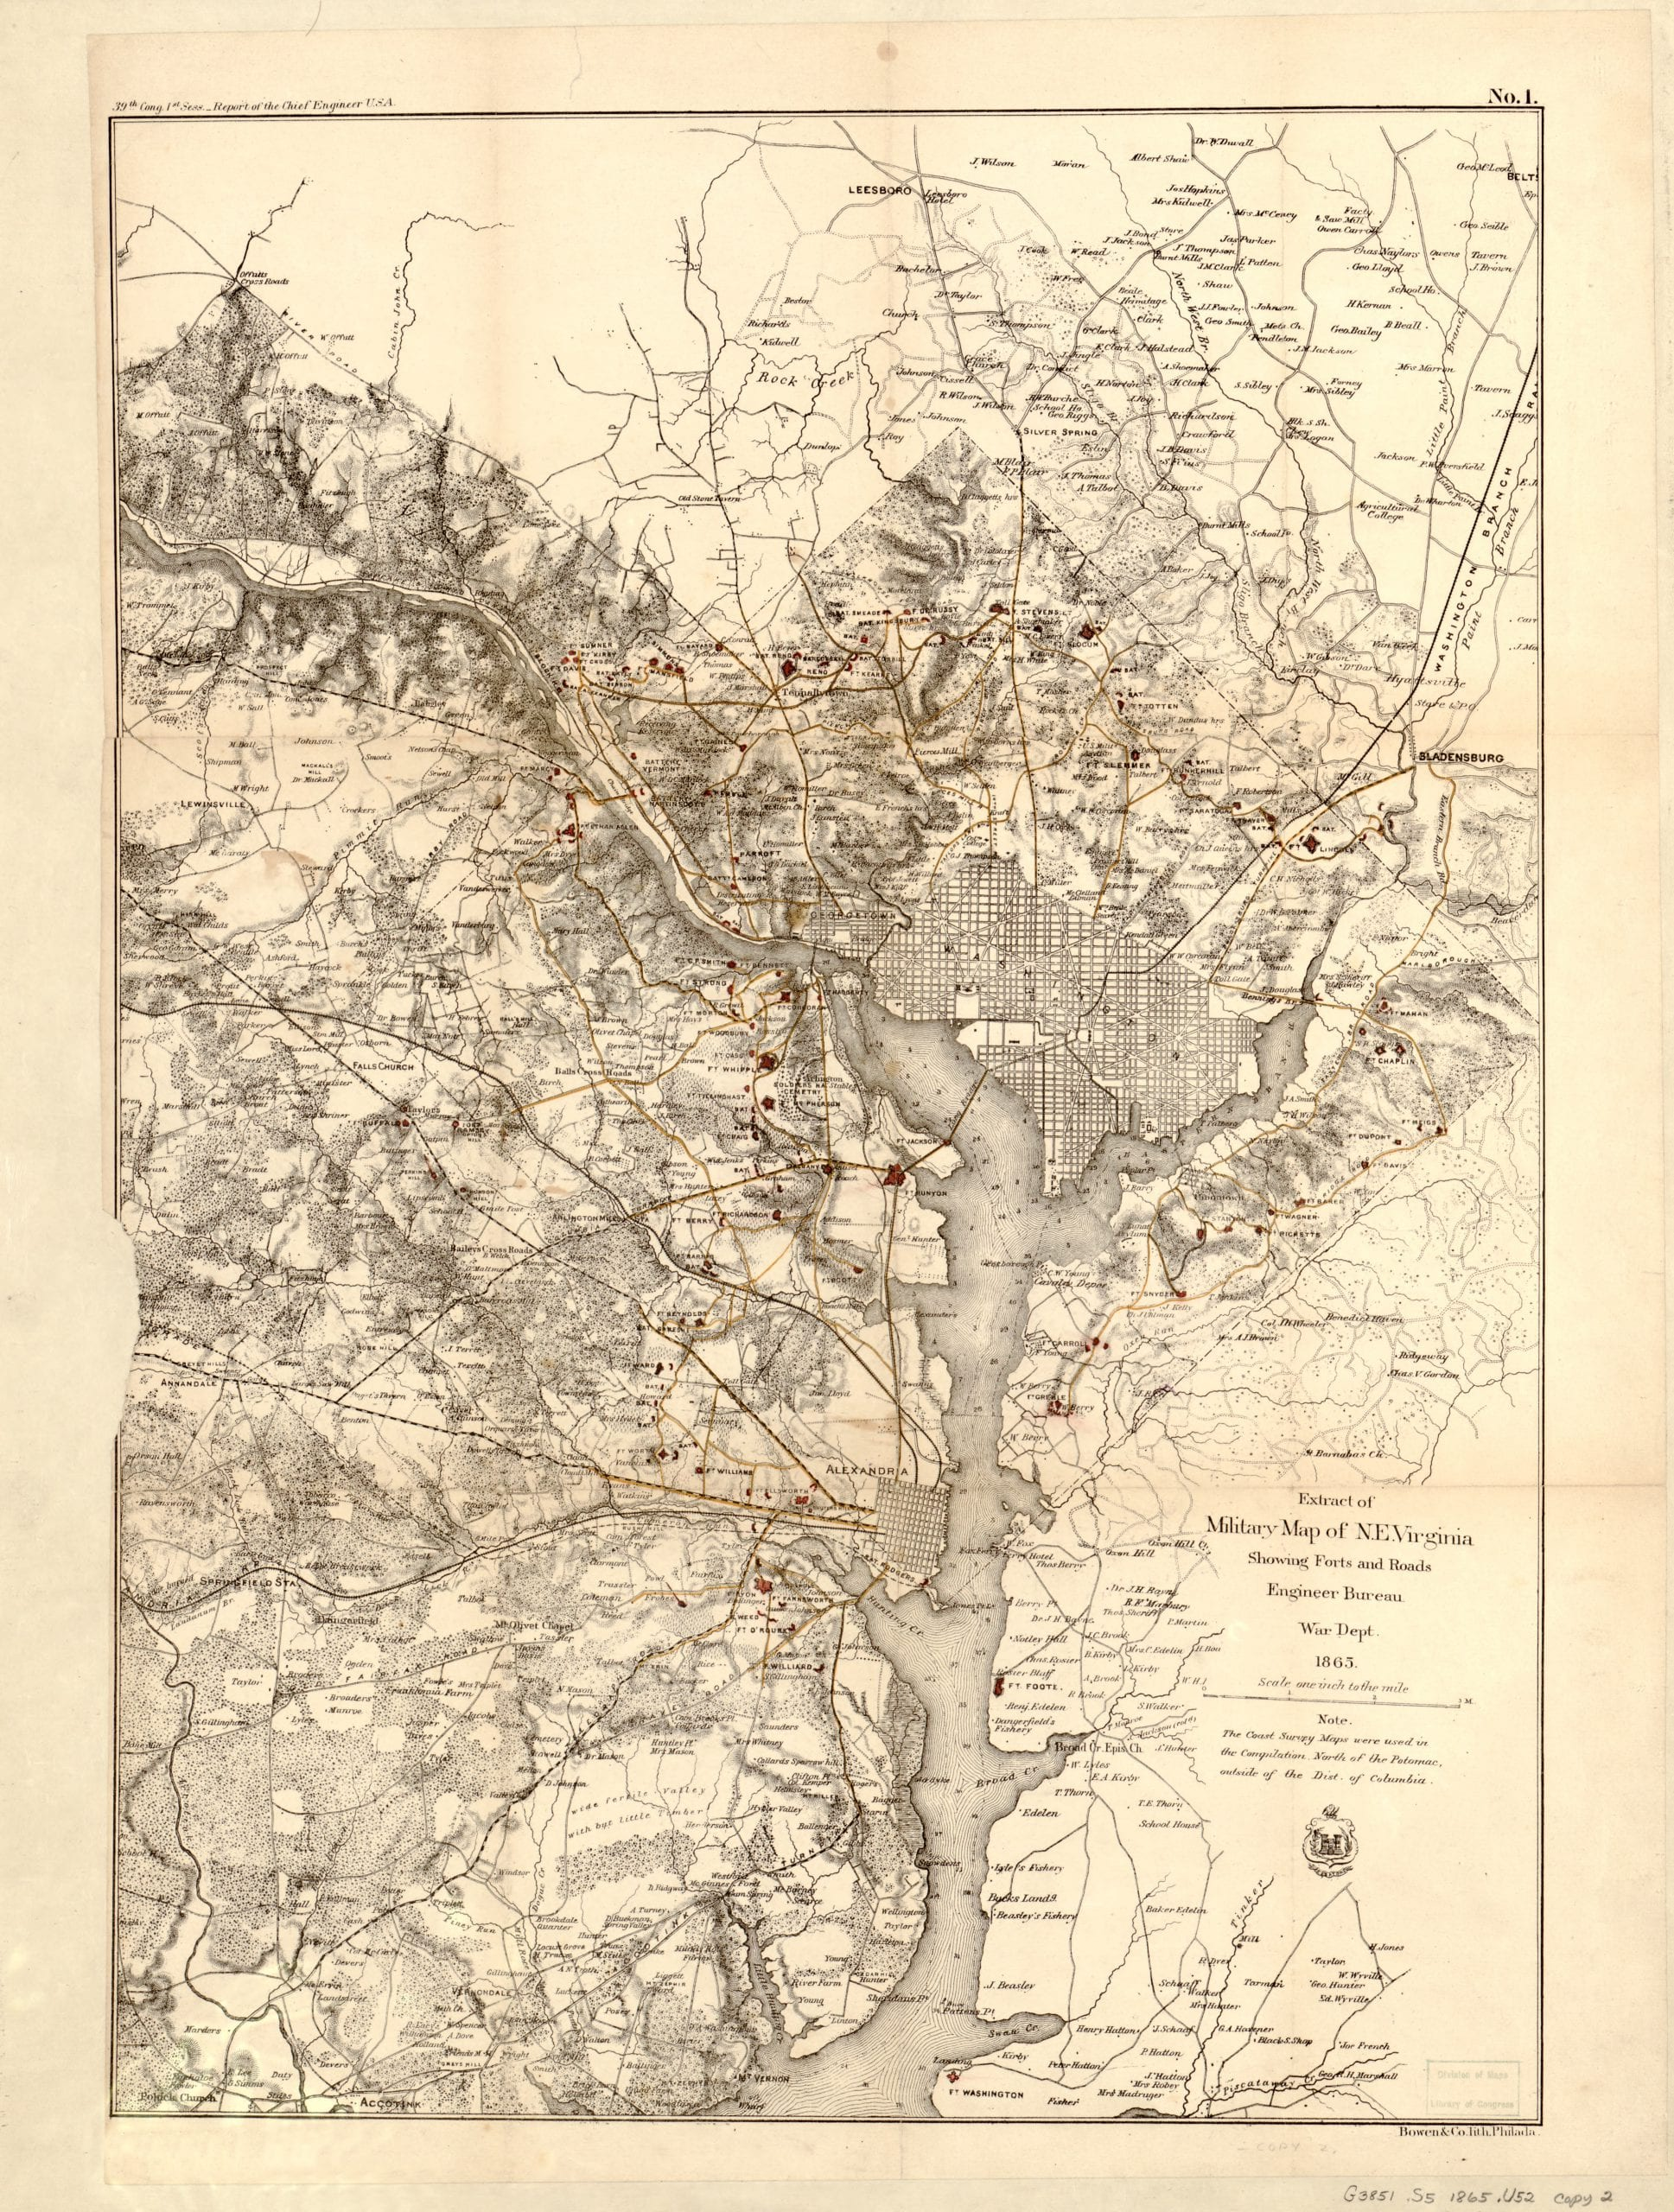 Civil War Military Map of D.C. Area